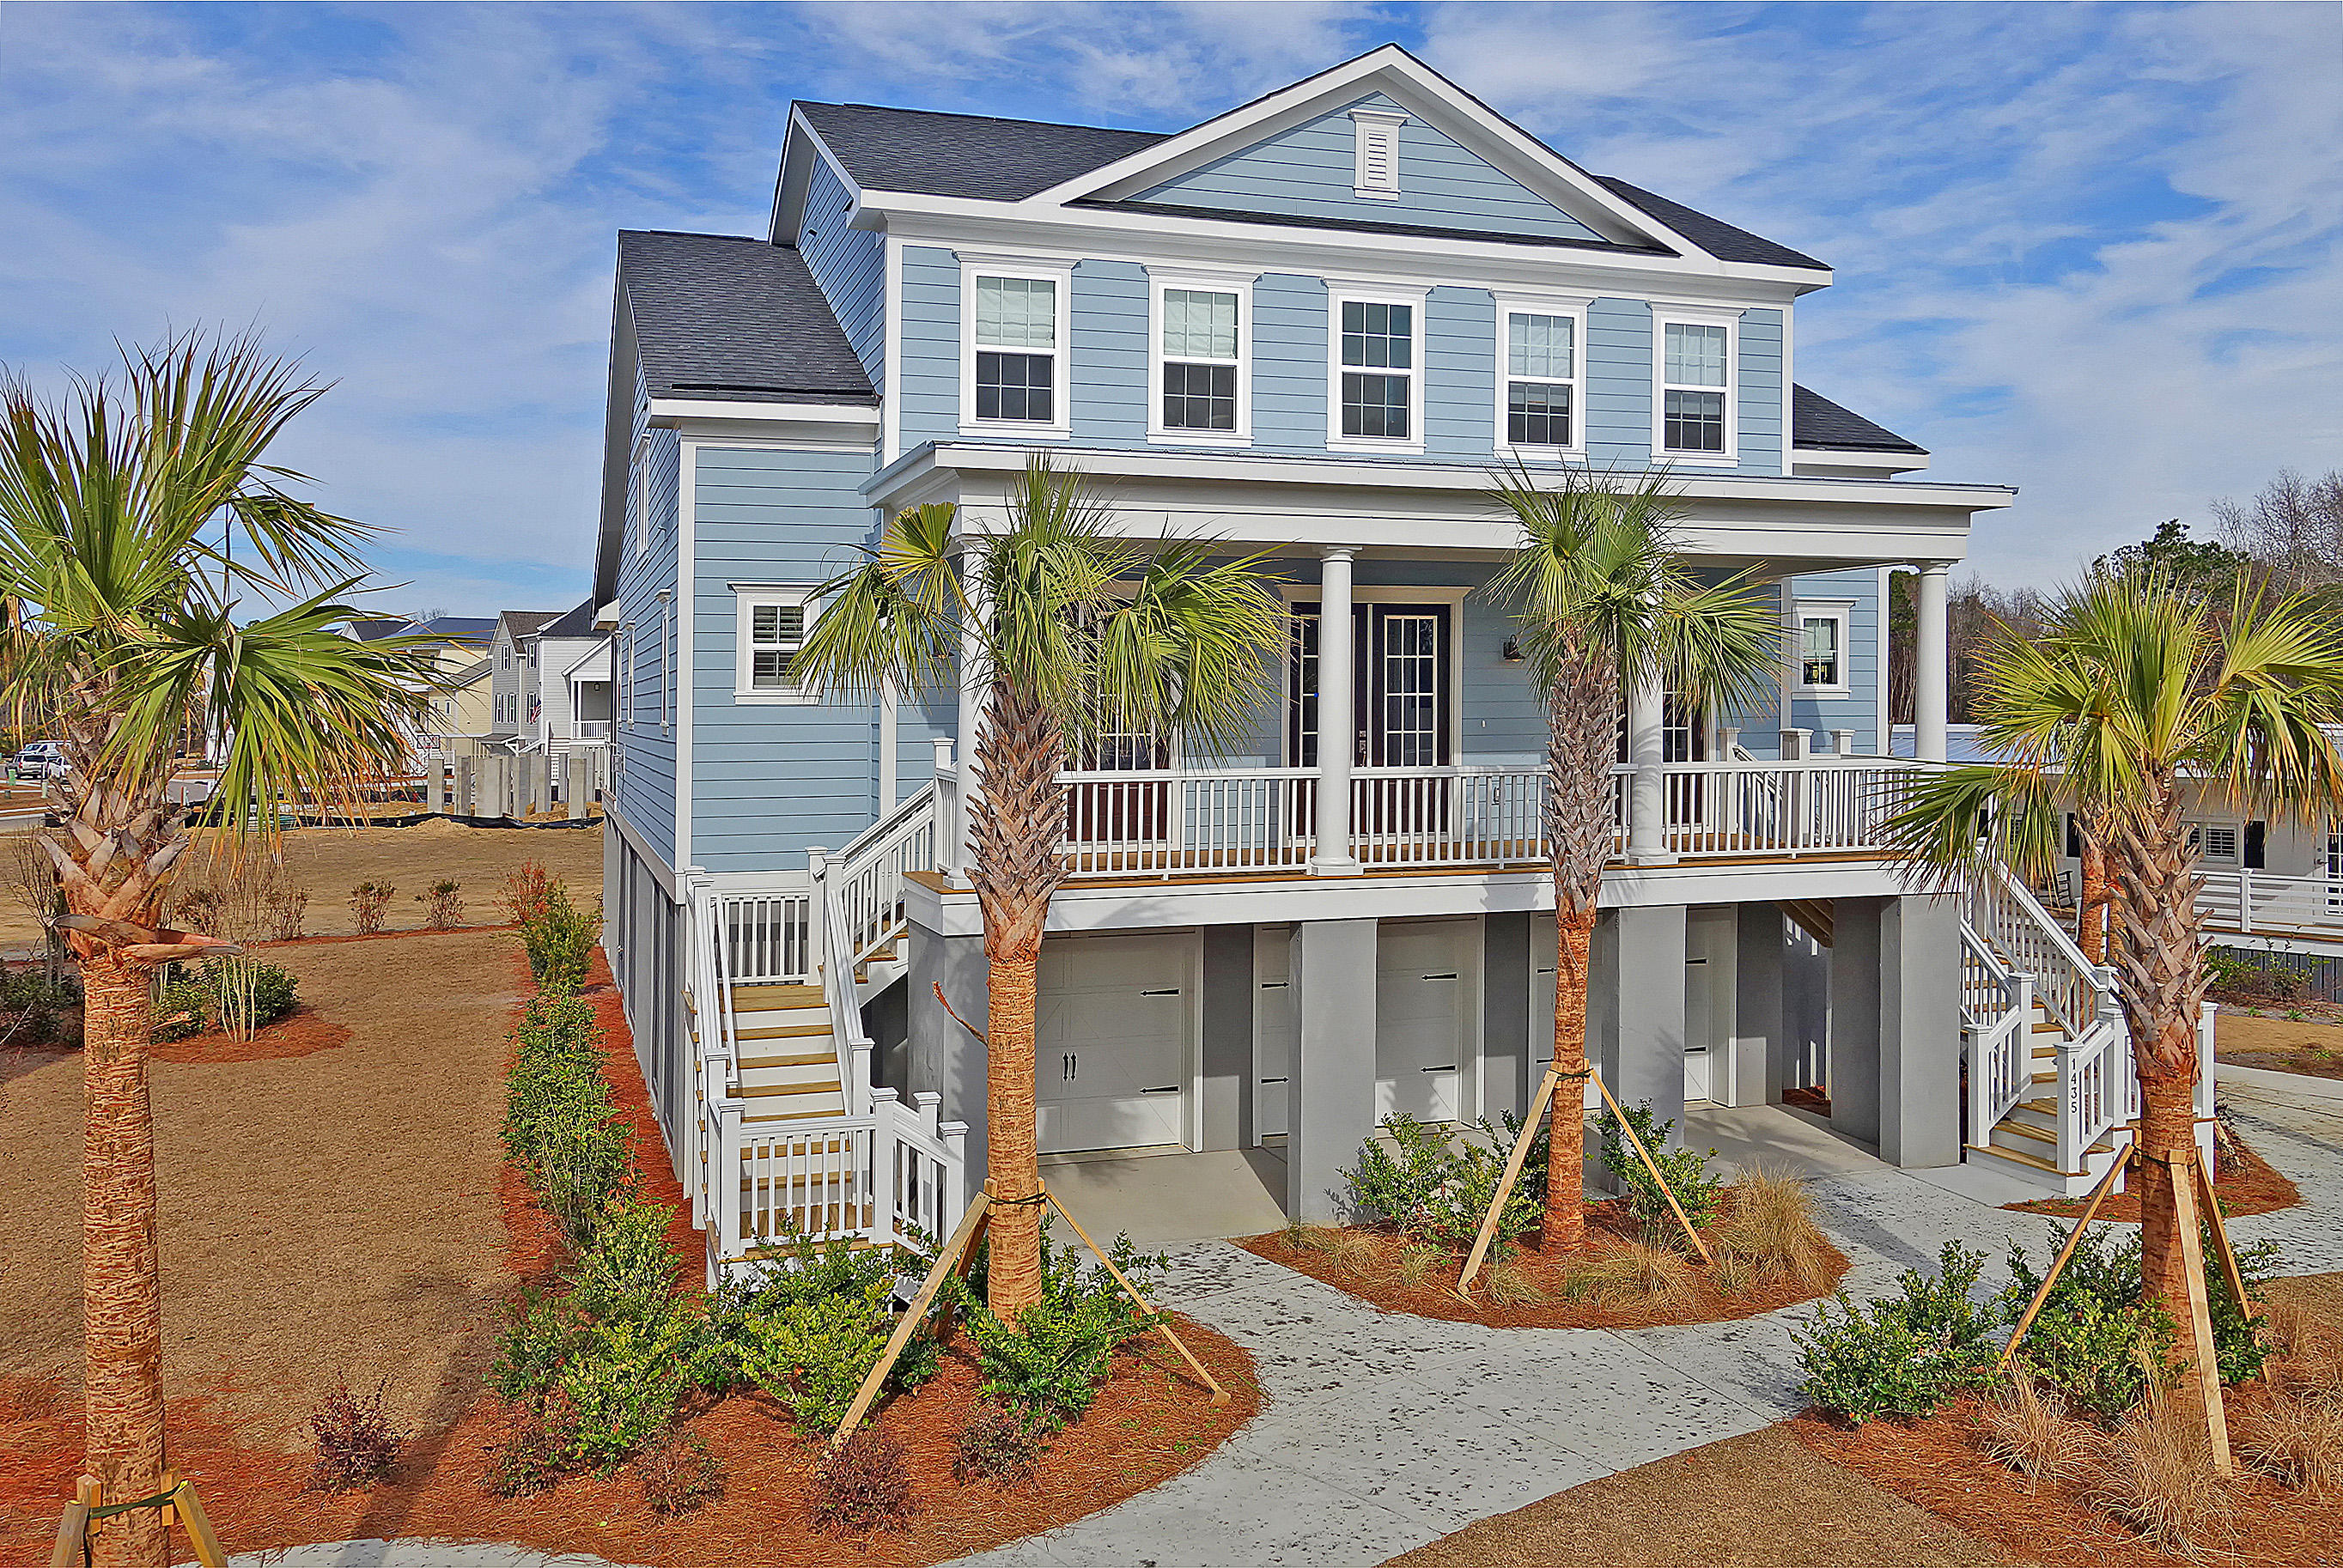 Stratton by the Sound Homes For Sale - 1435 Stratton, Mount Pleasant, SC - 2